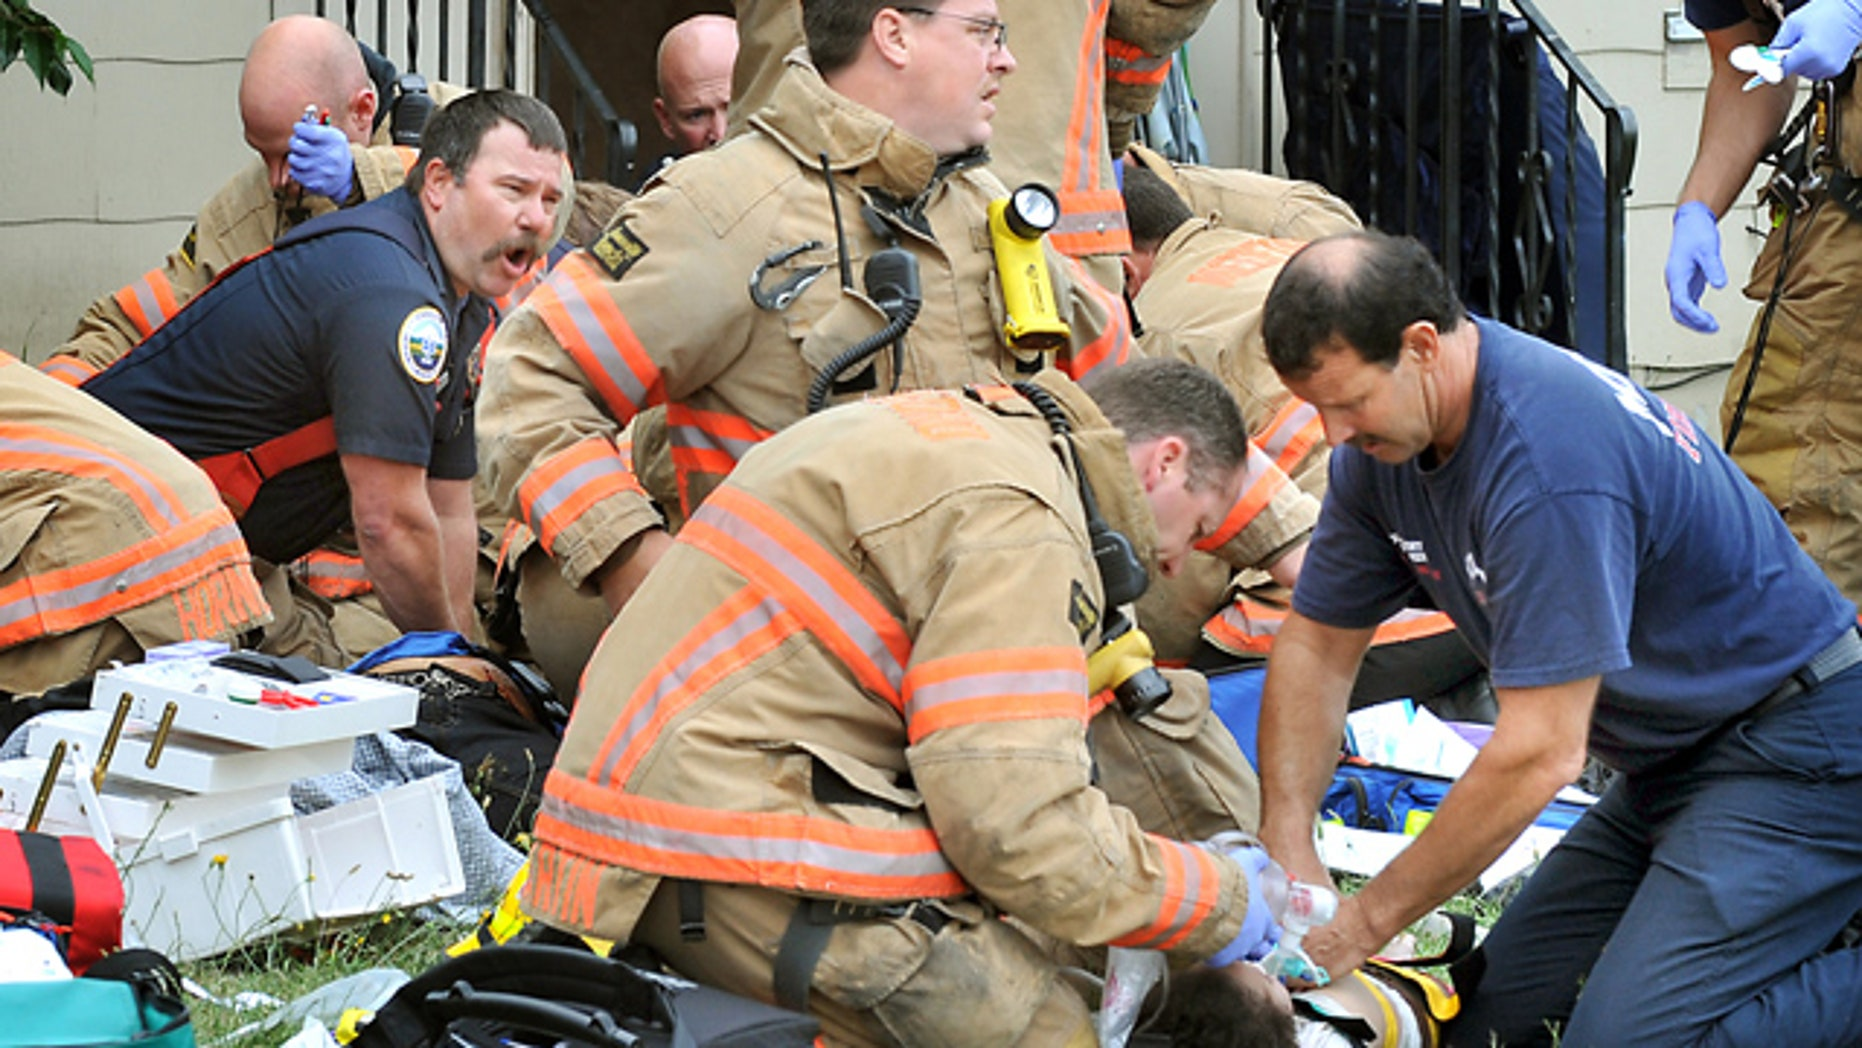 July 18, 2011: Emergency crews work to save people pulled from a burning home on West 10th Street in Medford, Ore.